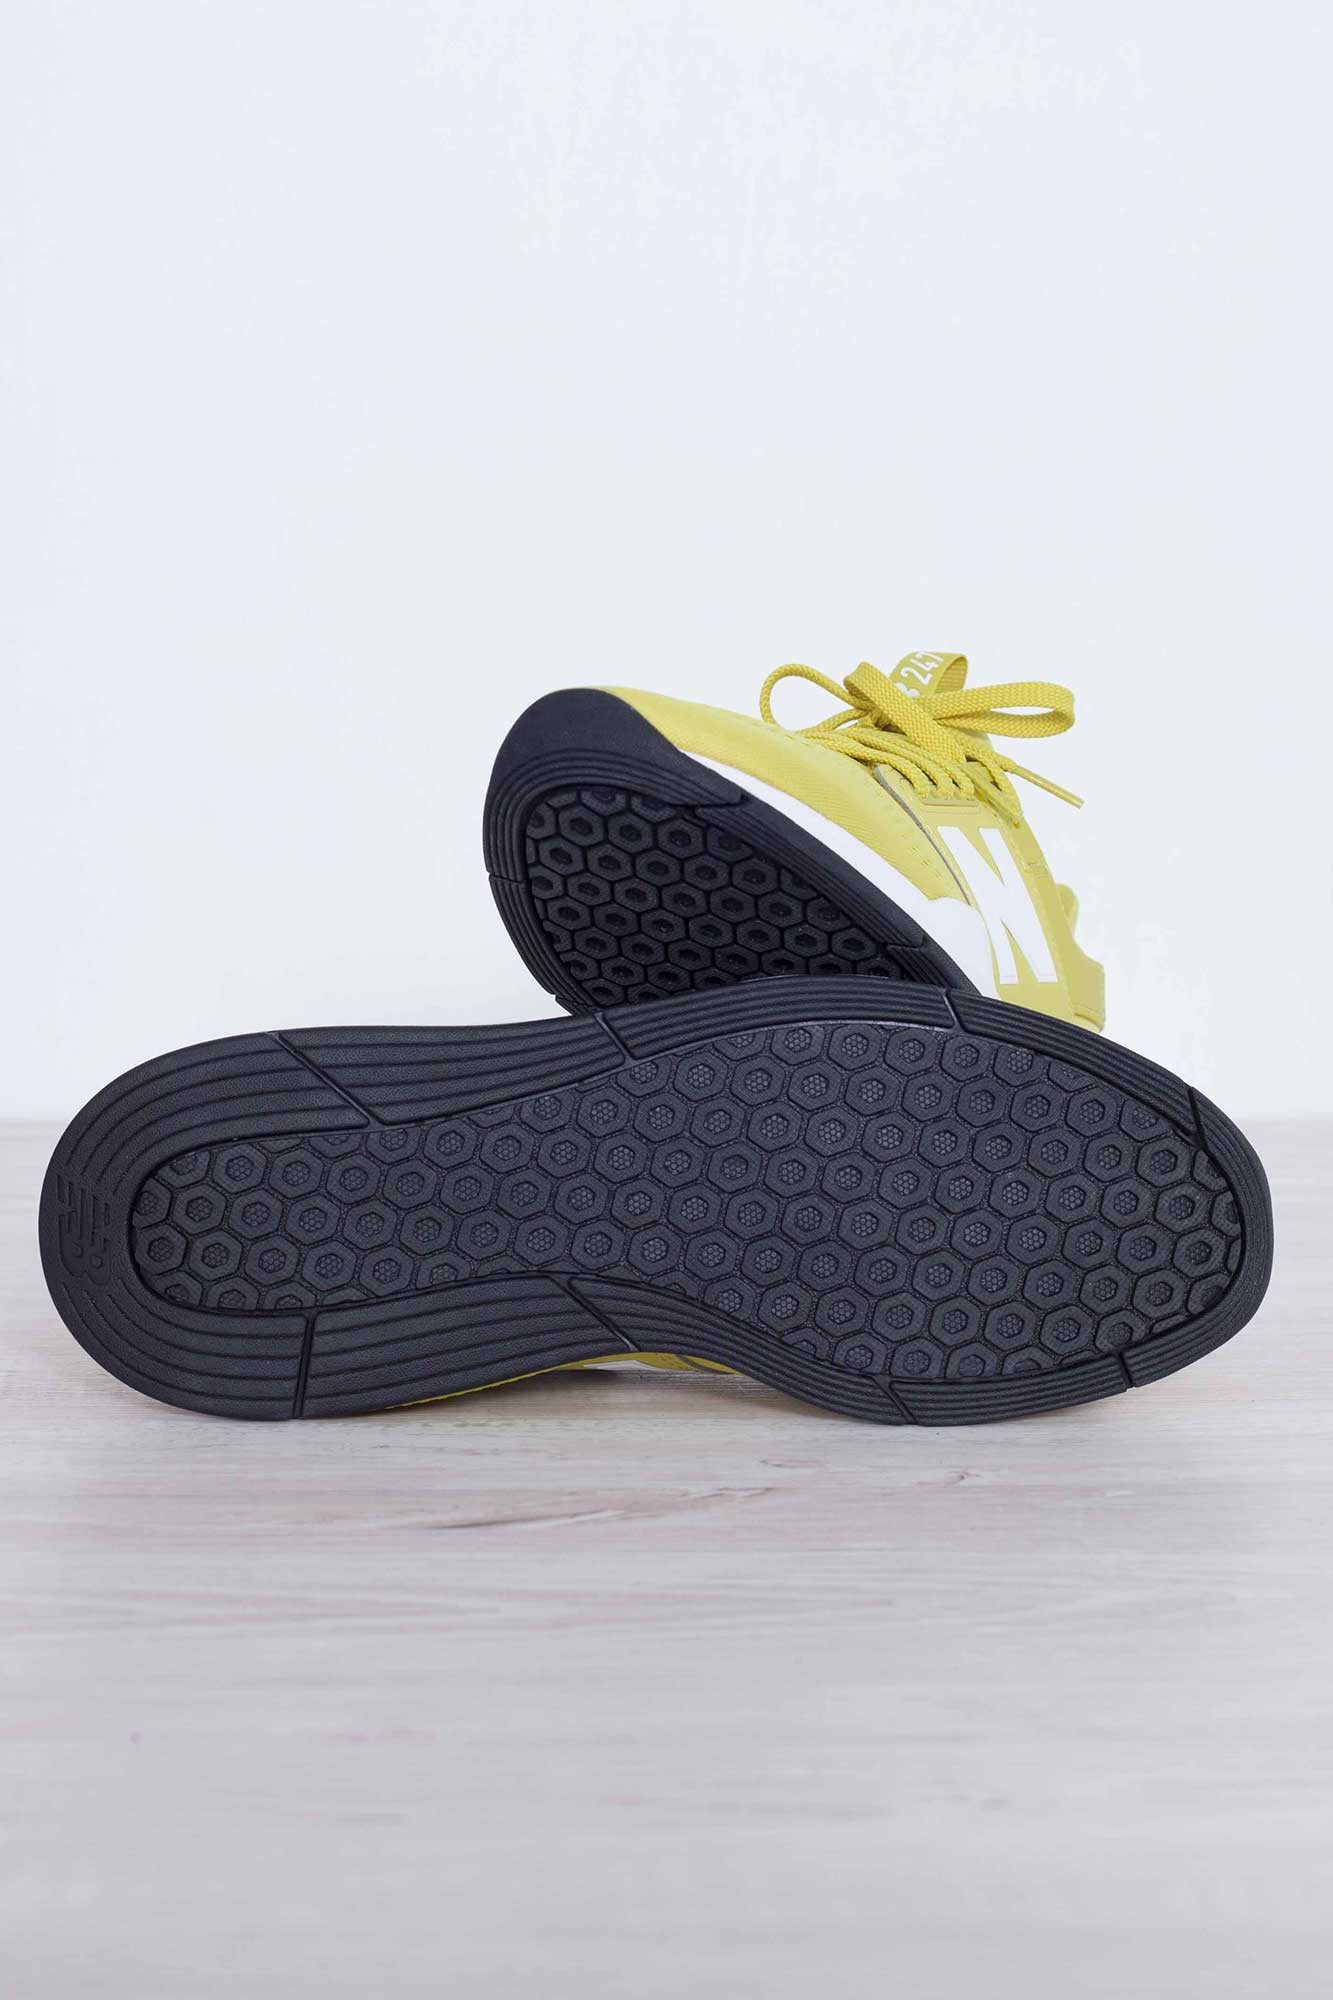 247 v2 lime yellow mesh sneakers